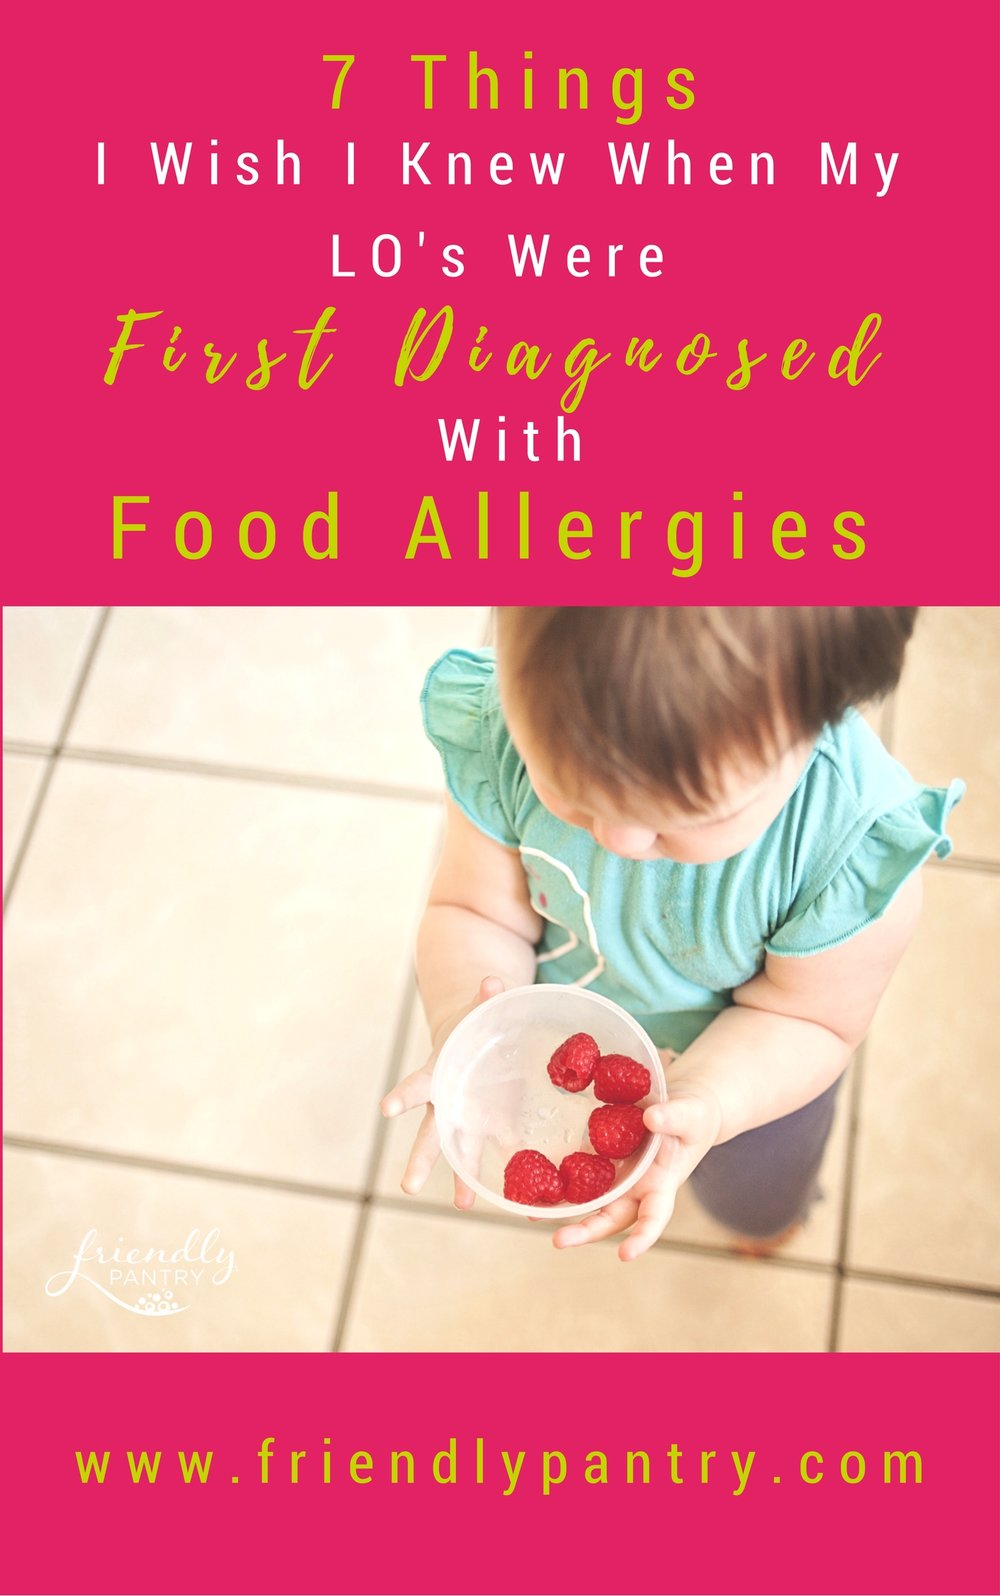 Newly Diagnosed With Food Allergies